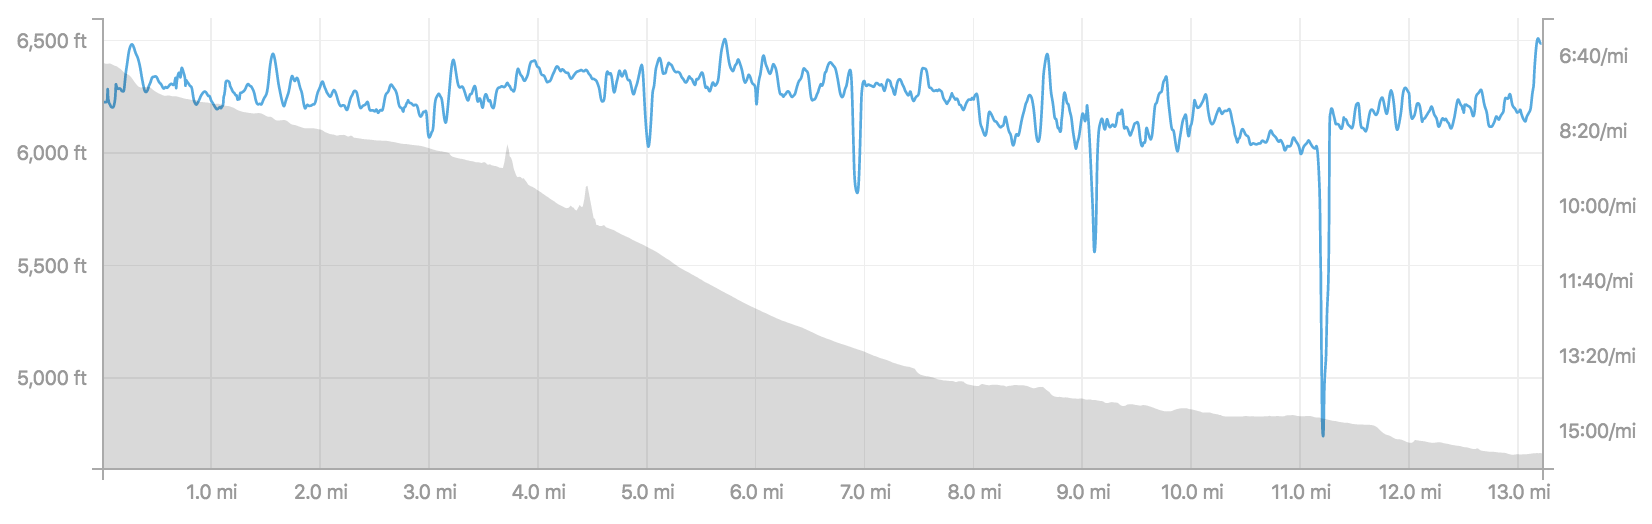 Course elevation and my pace overlay.